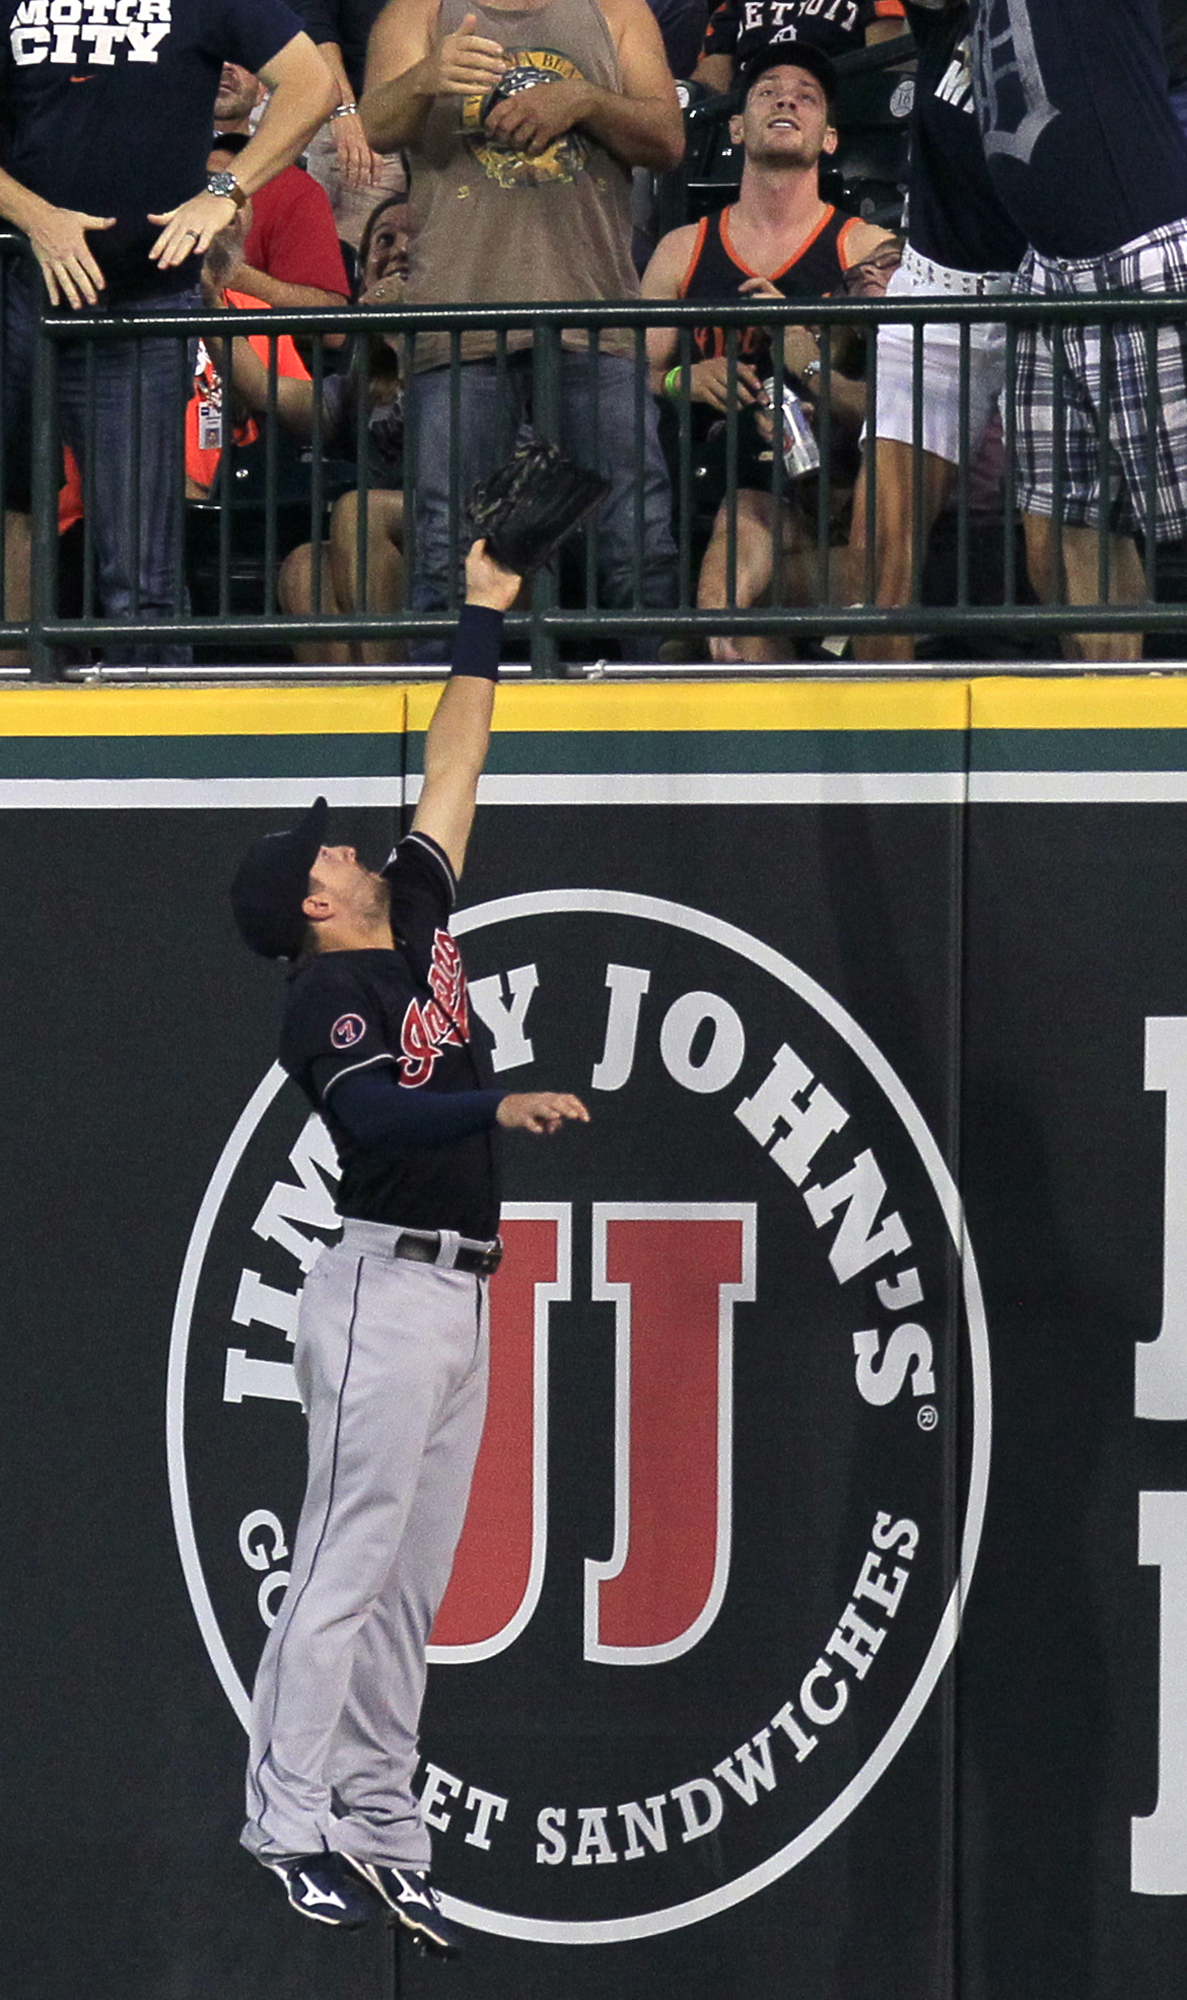 Cleveland Indians right fielder Lonnie Chisenhall leaps against the right field wall while trying to catch a home run hit by Detroit Tigers' J.D. Martinez during the third inning of a baseball game Saturday, Sept. 5, 2015, in Detroit. (AP Photo/Duane Burl